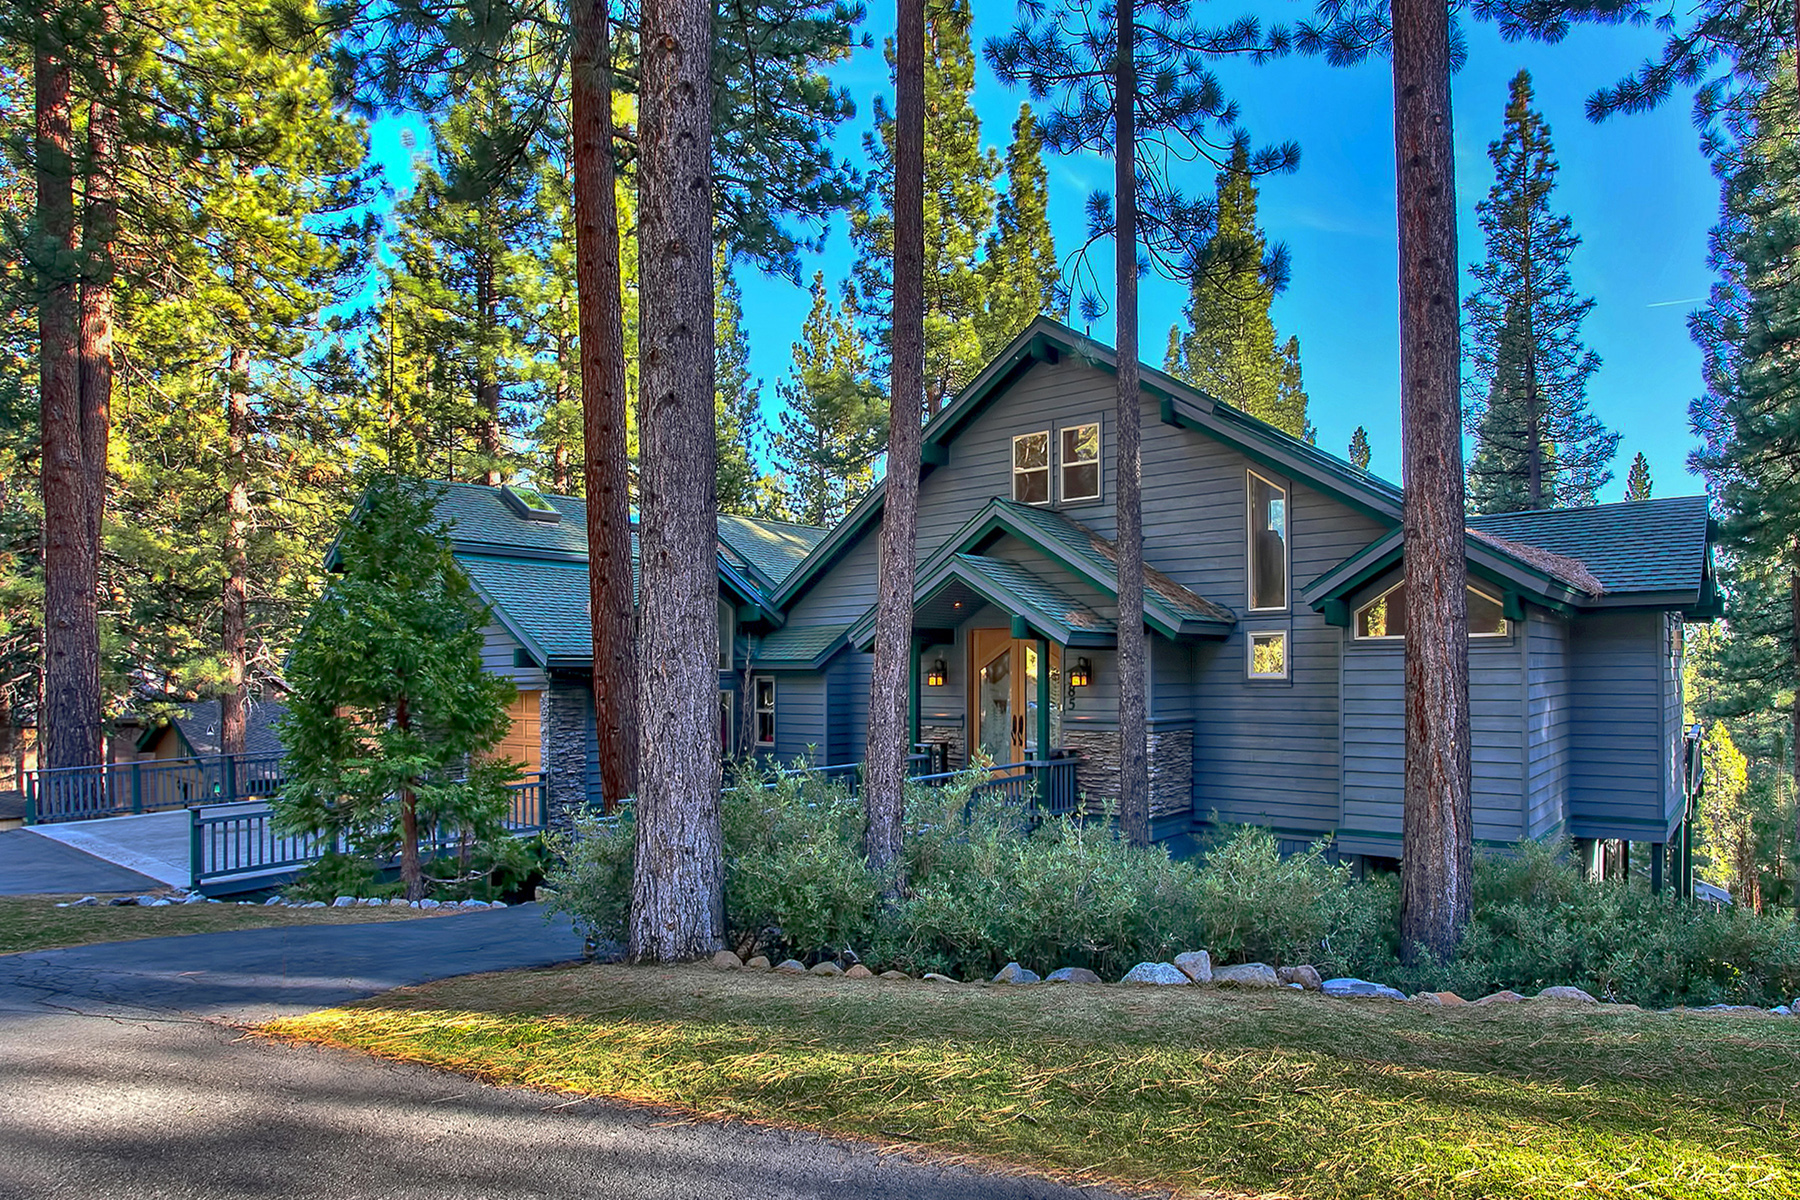 Maison unifamiliale pour l Vente à 585 Knotty Pine Drive Incline Village, Nevada, 89451 Lake Tahoe, États-Unis